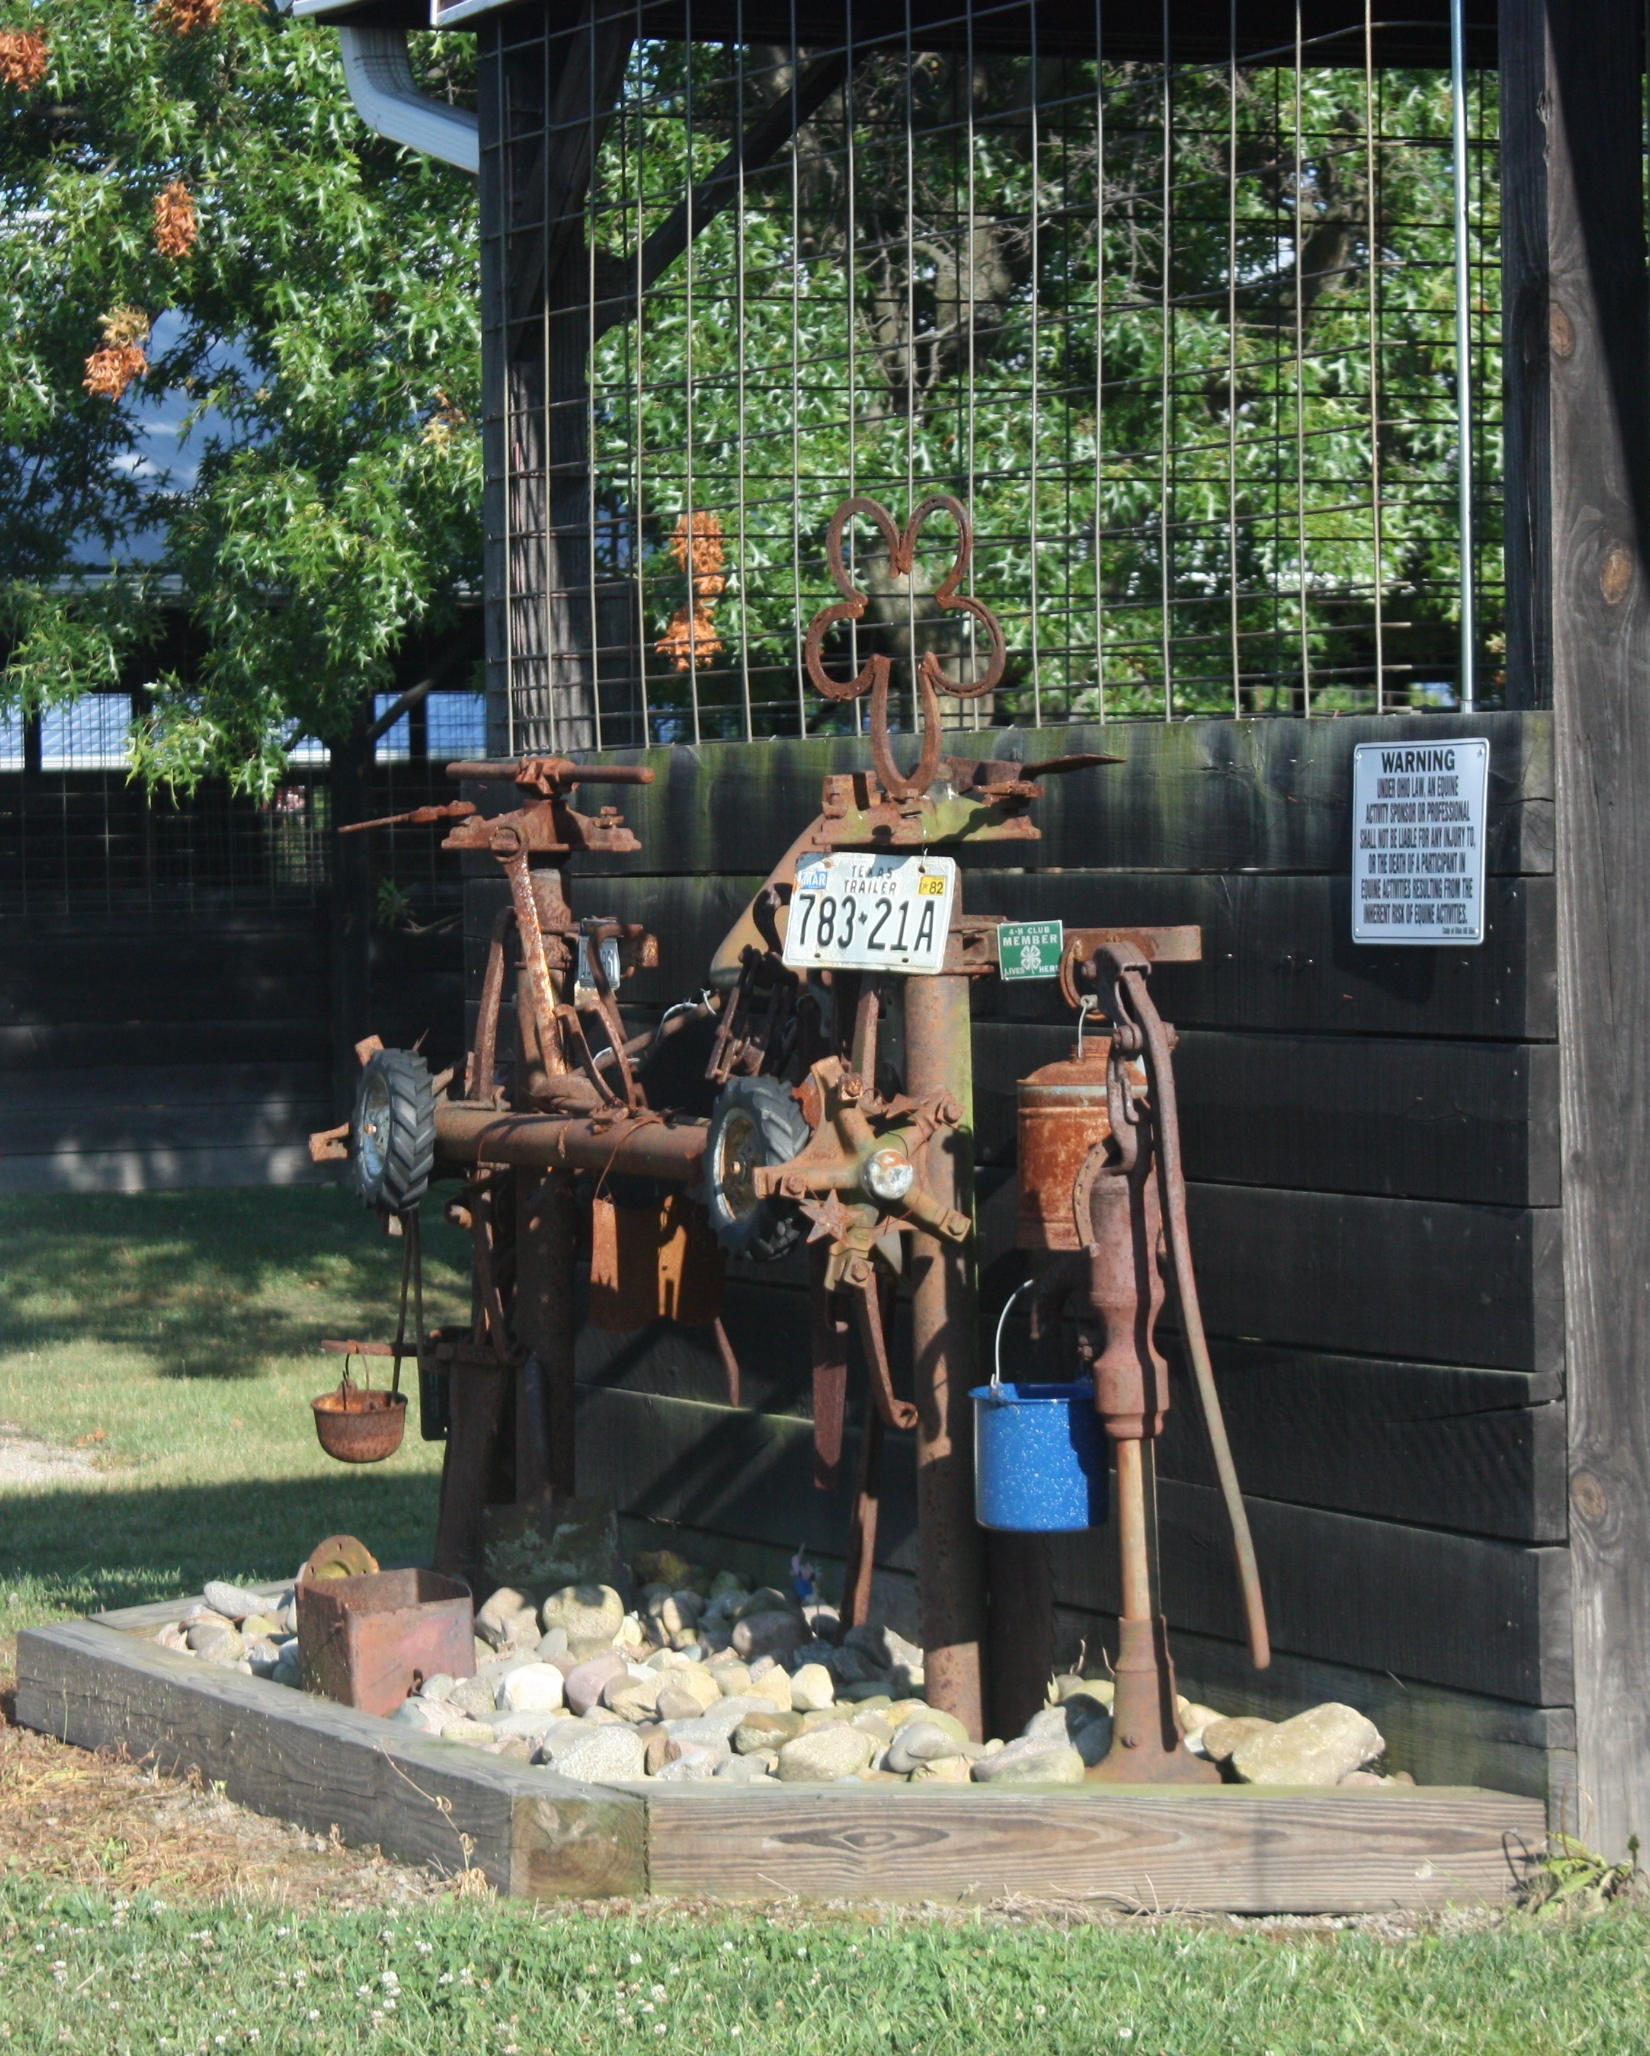 Barshoe hitching post